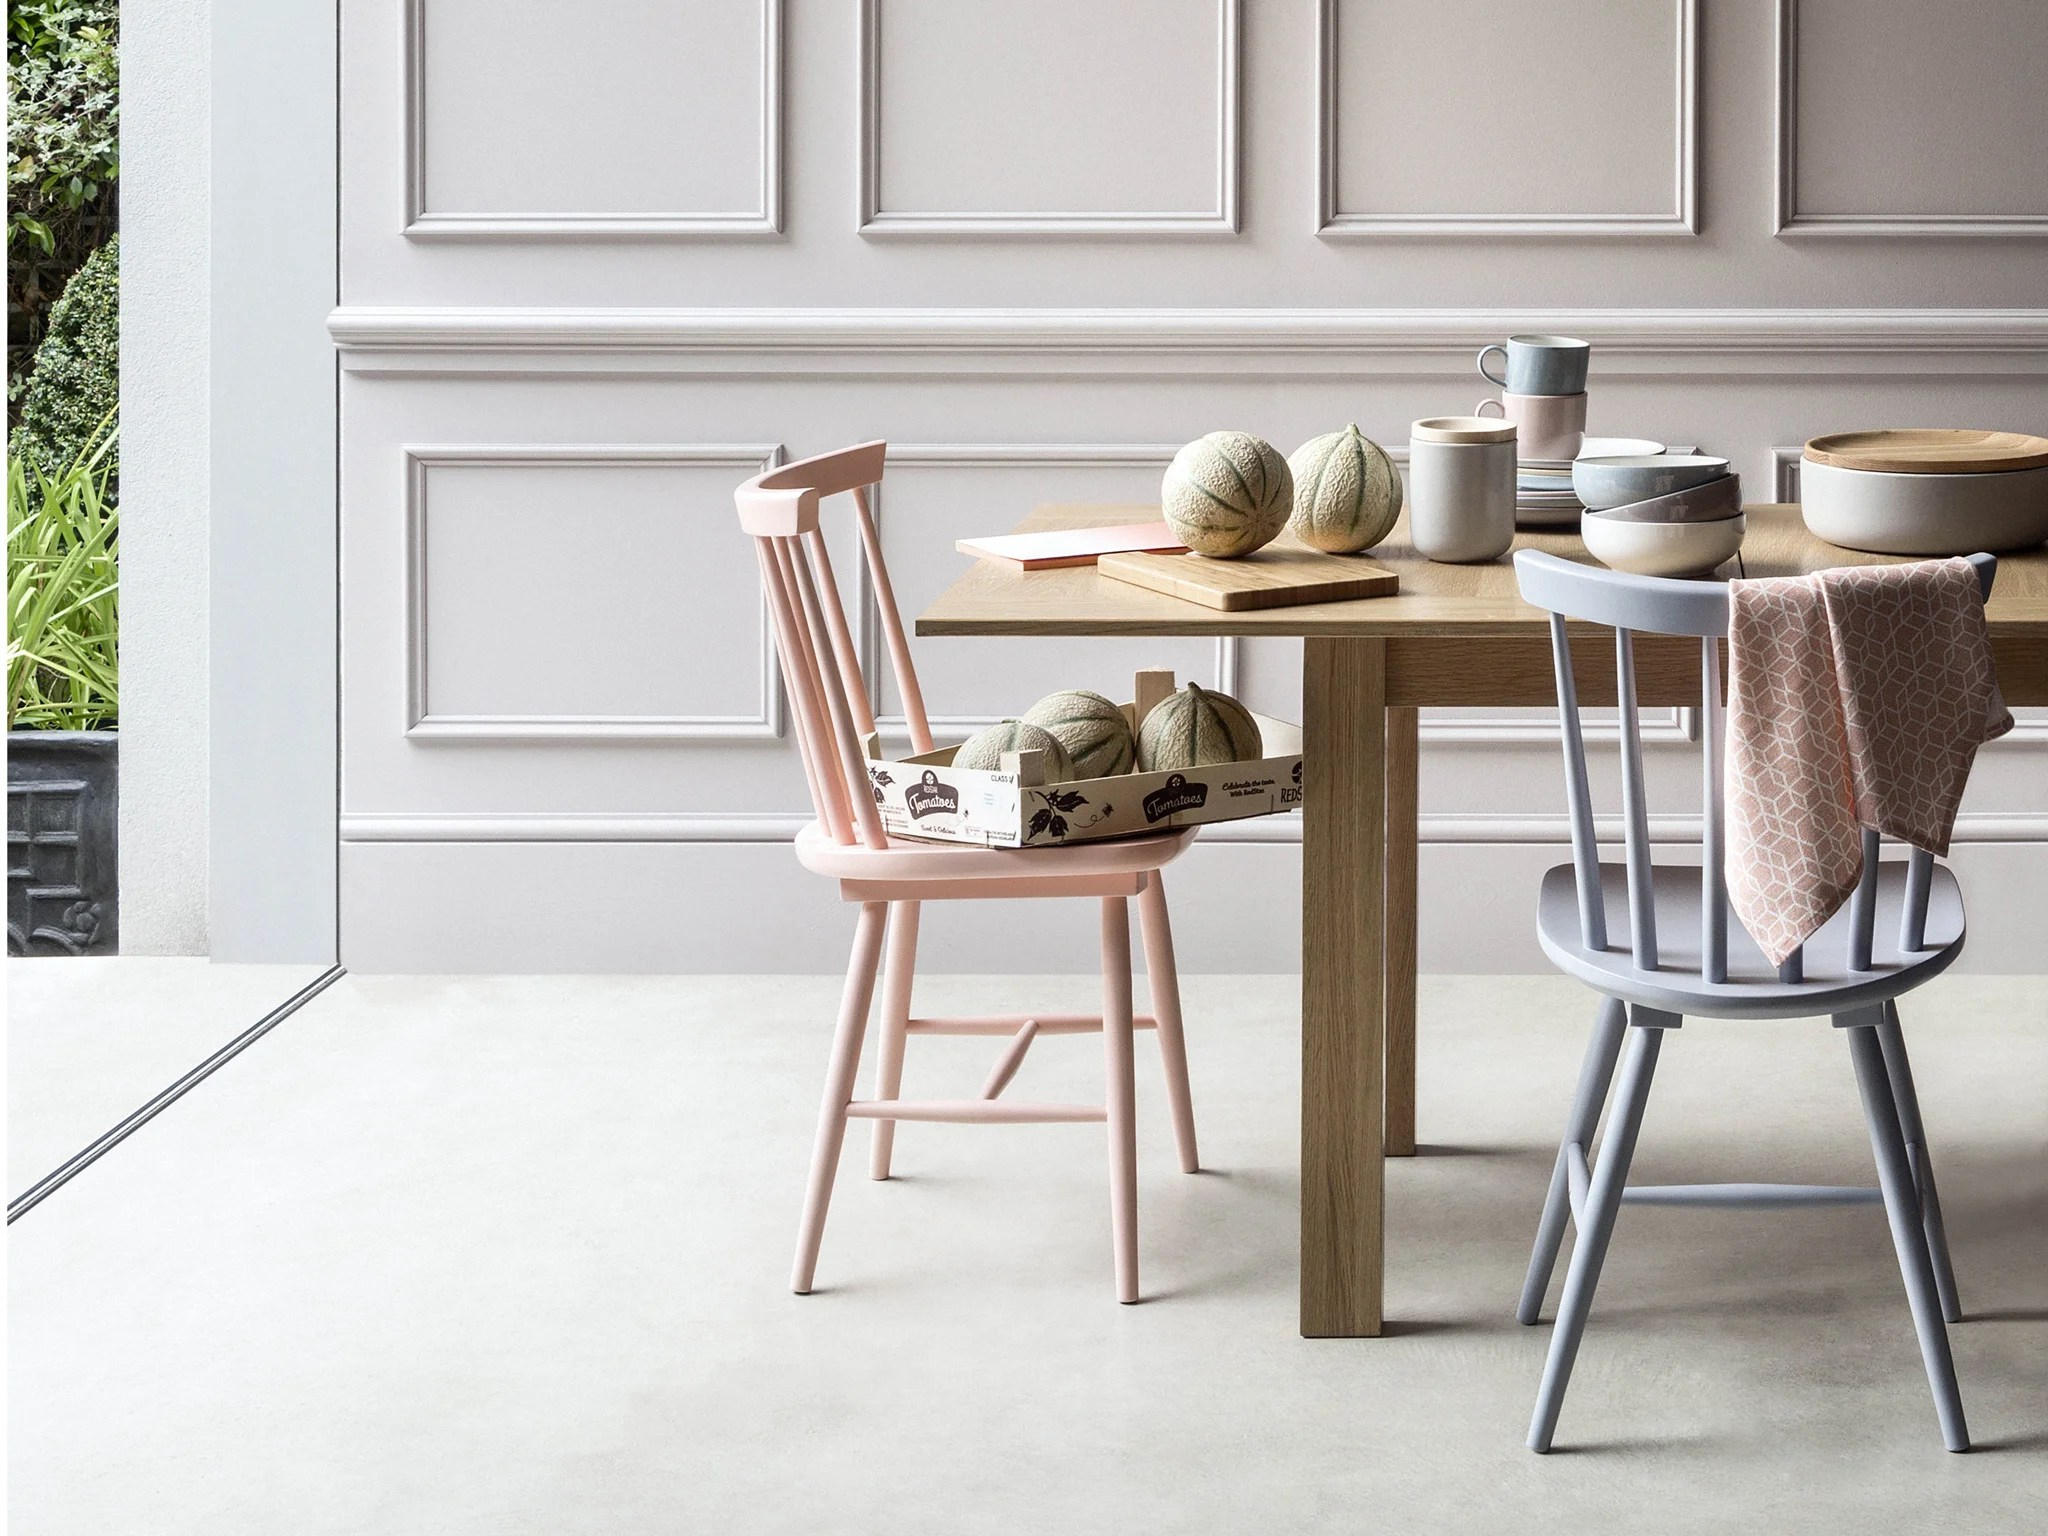 best dining chairs ikea john lewis habitat marks and spencer west elm a comfortable kitchen chairs